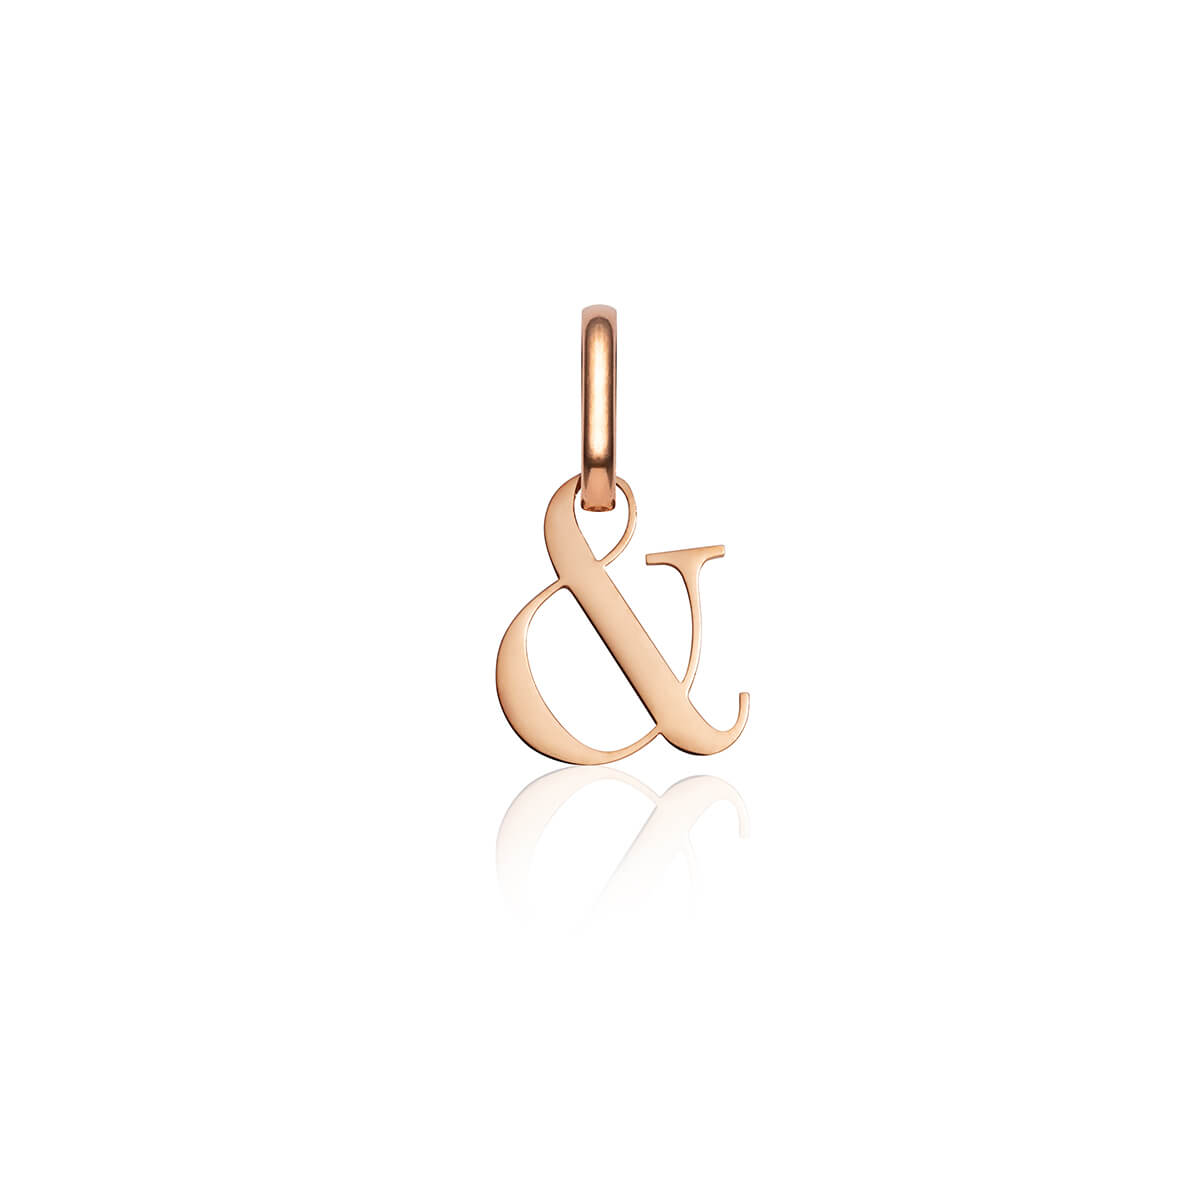 & Pendant (Rose Gold)